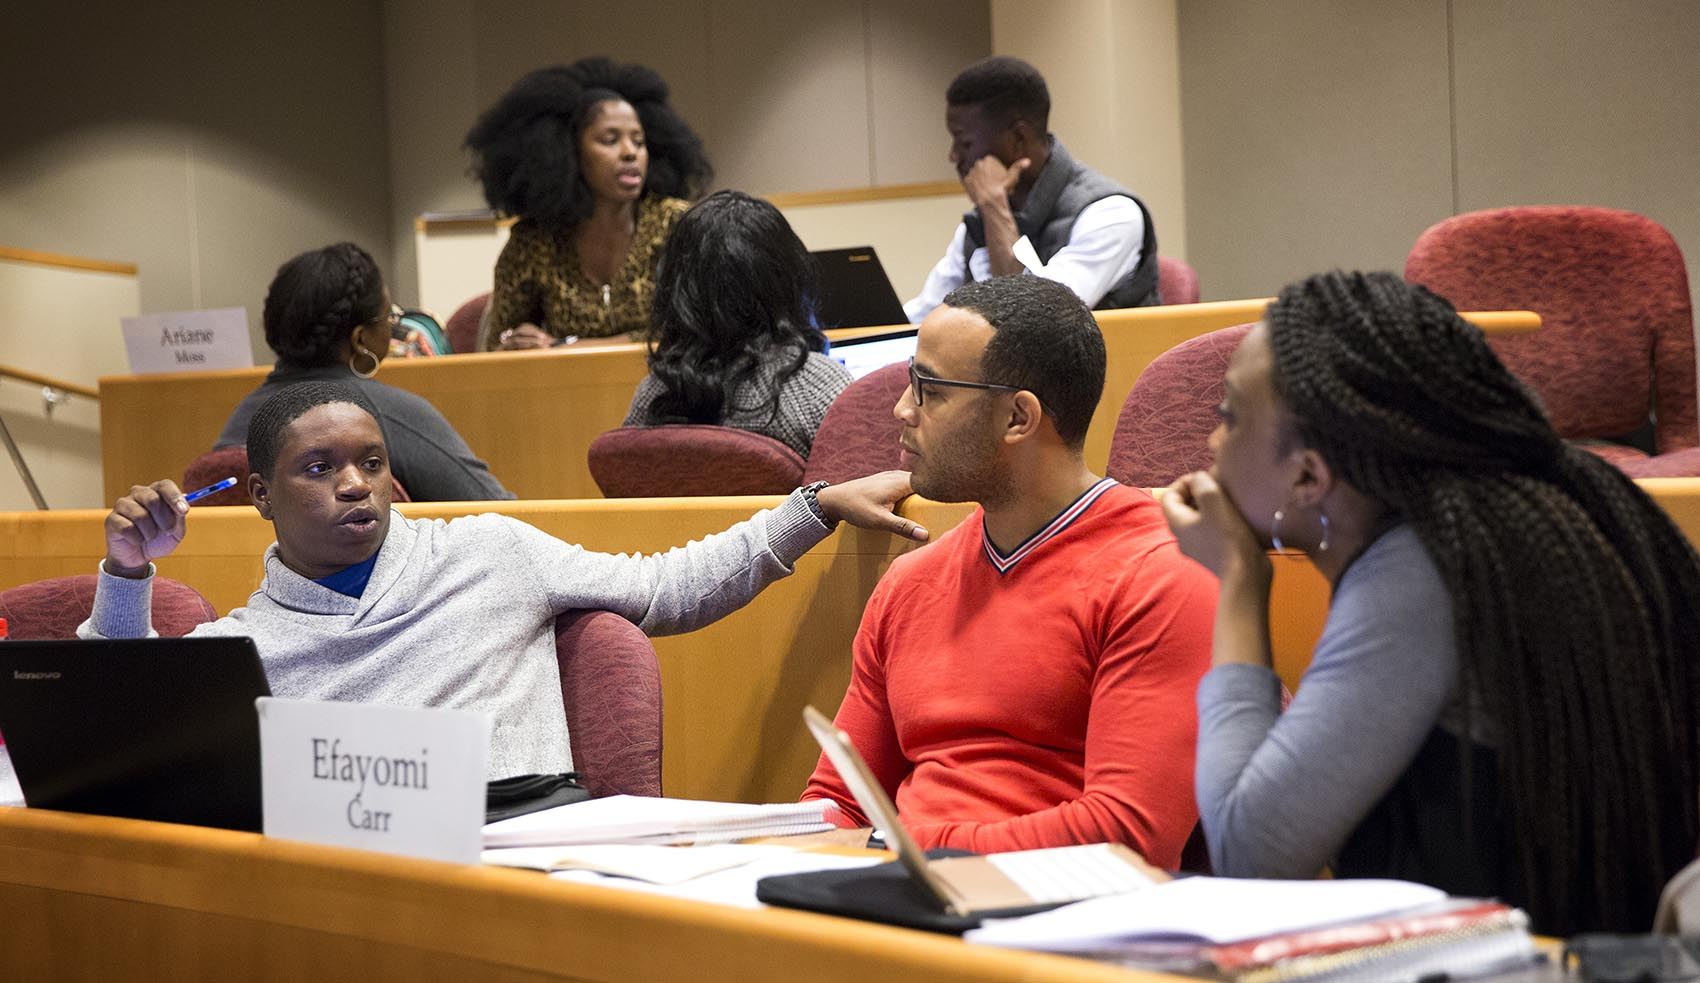 Student Collaborative Conversations ~ Harvard business school looks to diversify its case